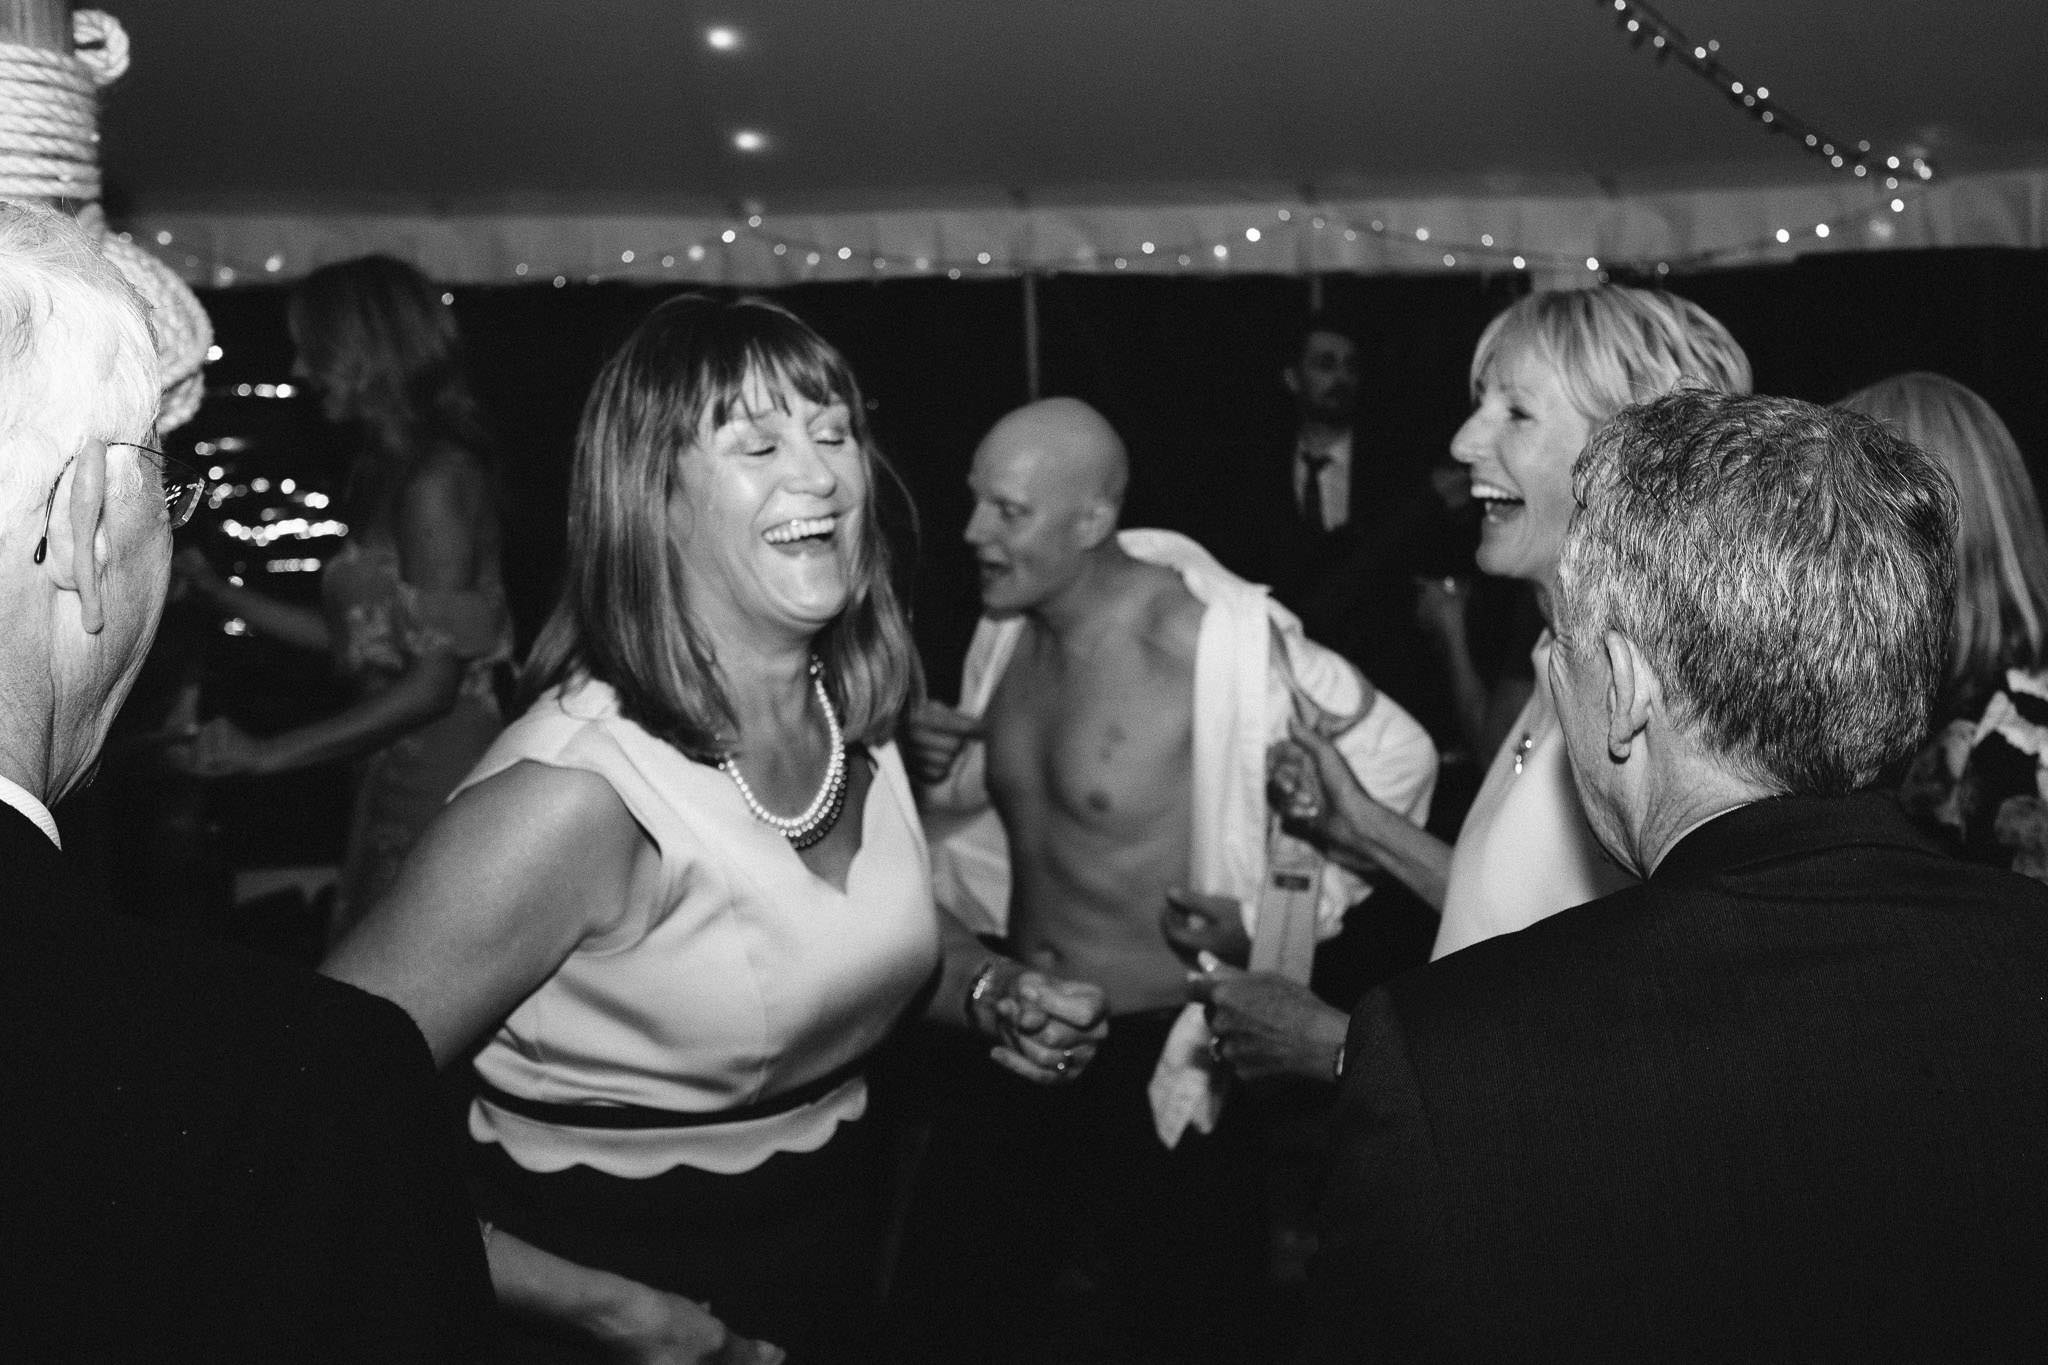 A black and white photo of wedding guests laughing at someone taking off his shirt on the dance floor